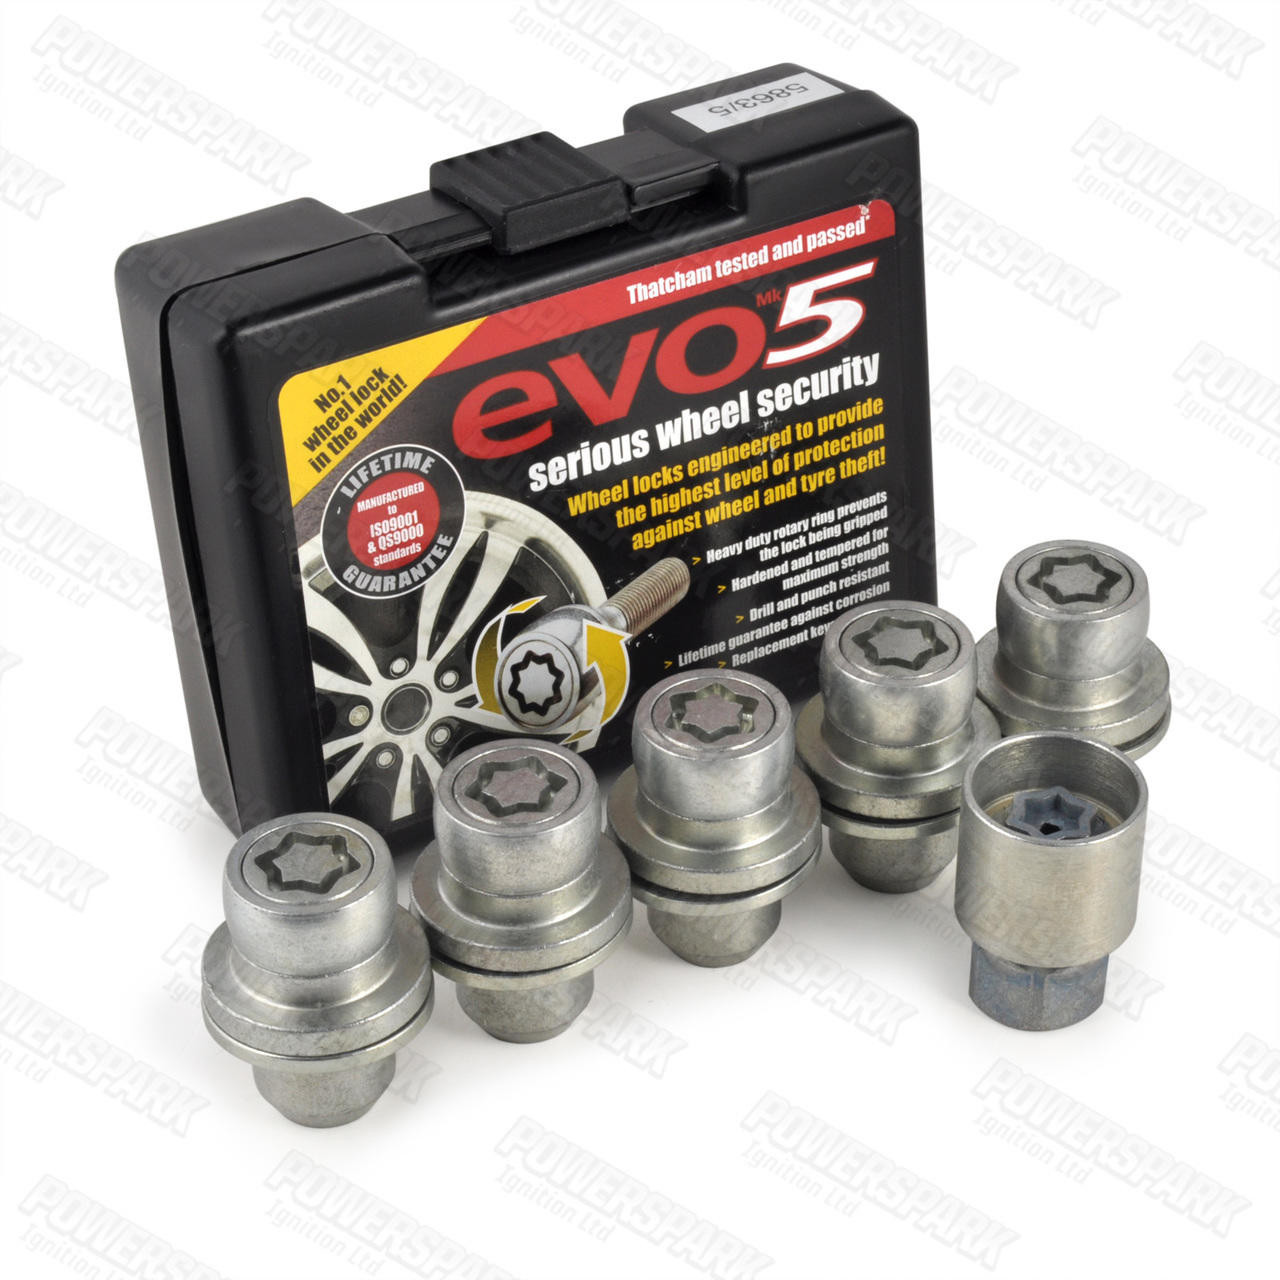 Evo MK5 Evo MK5 Locking Alloy Wheel Bolts 863/5 for Land rover Discovery 3 and Range Rover Sport set of 5